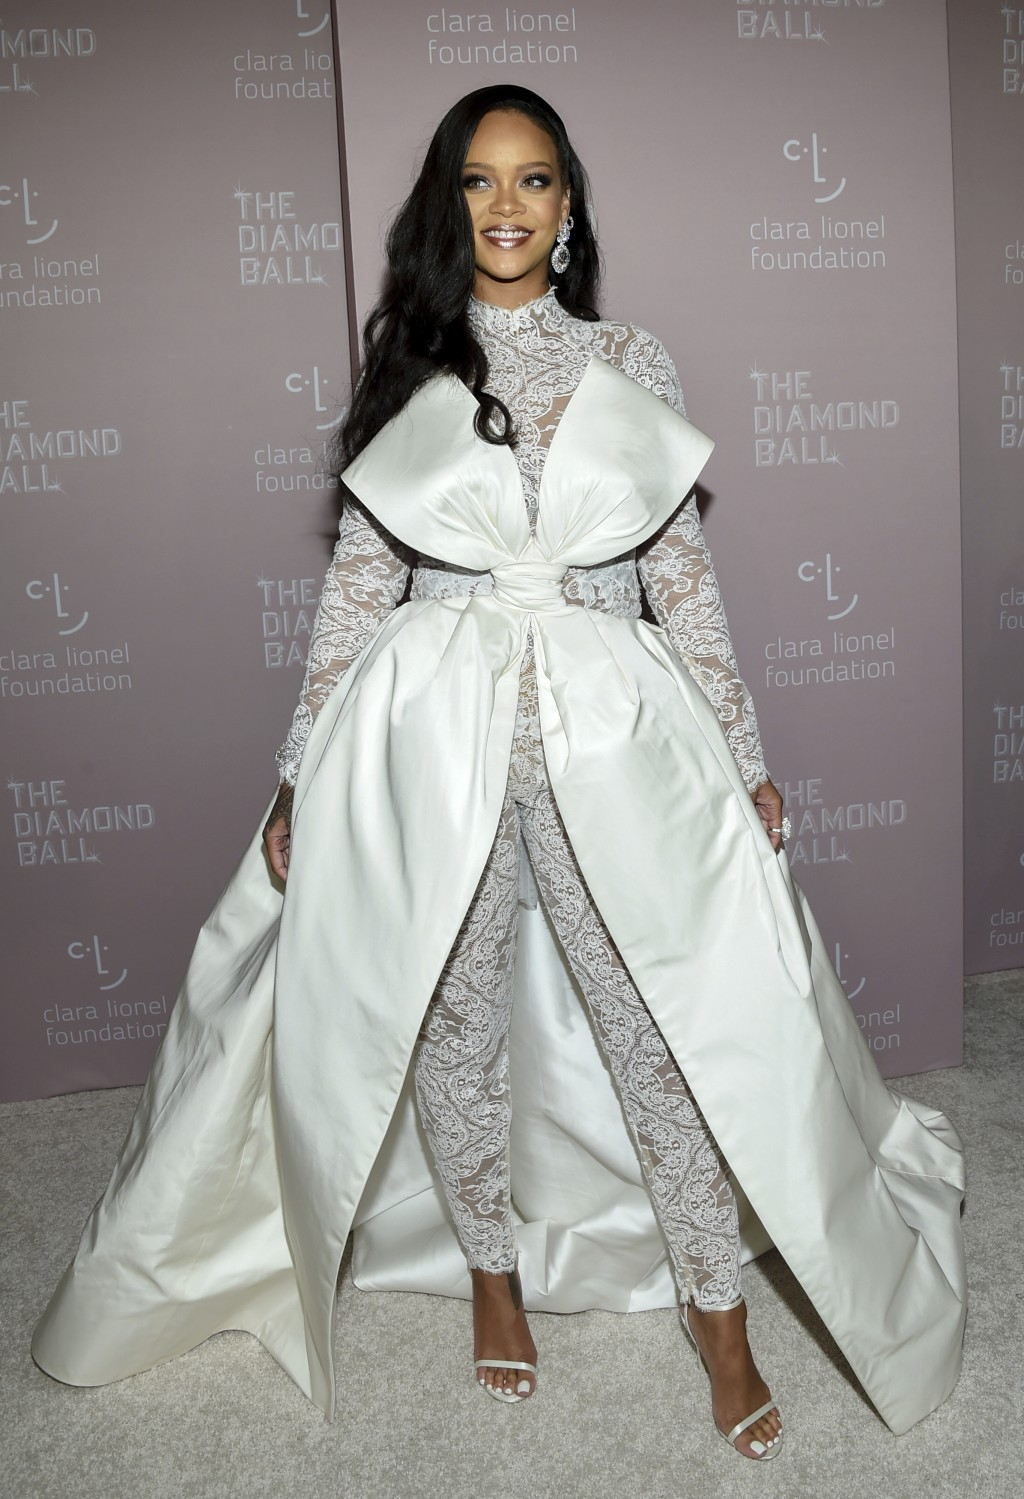 Singer Rihanna attends the 4th annual Diamond Ball at Cipriani Wall Street on Thursday, Sept. 13, 2018, in New York. (Photo by Evan Agostini/Invision/...